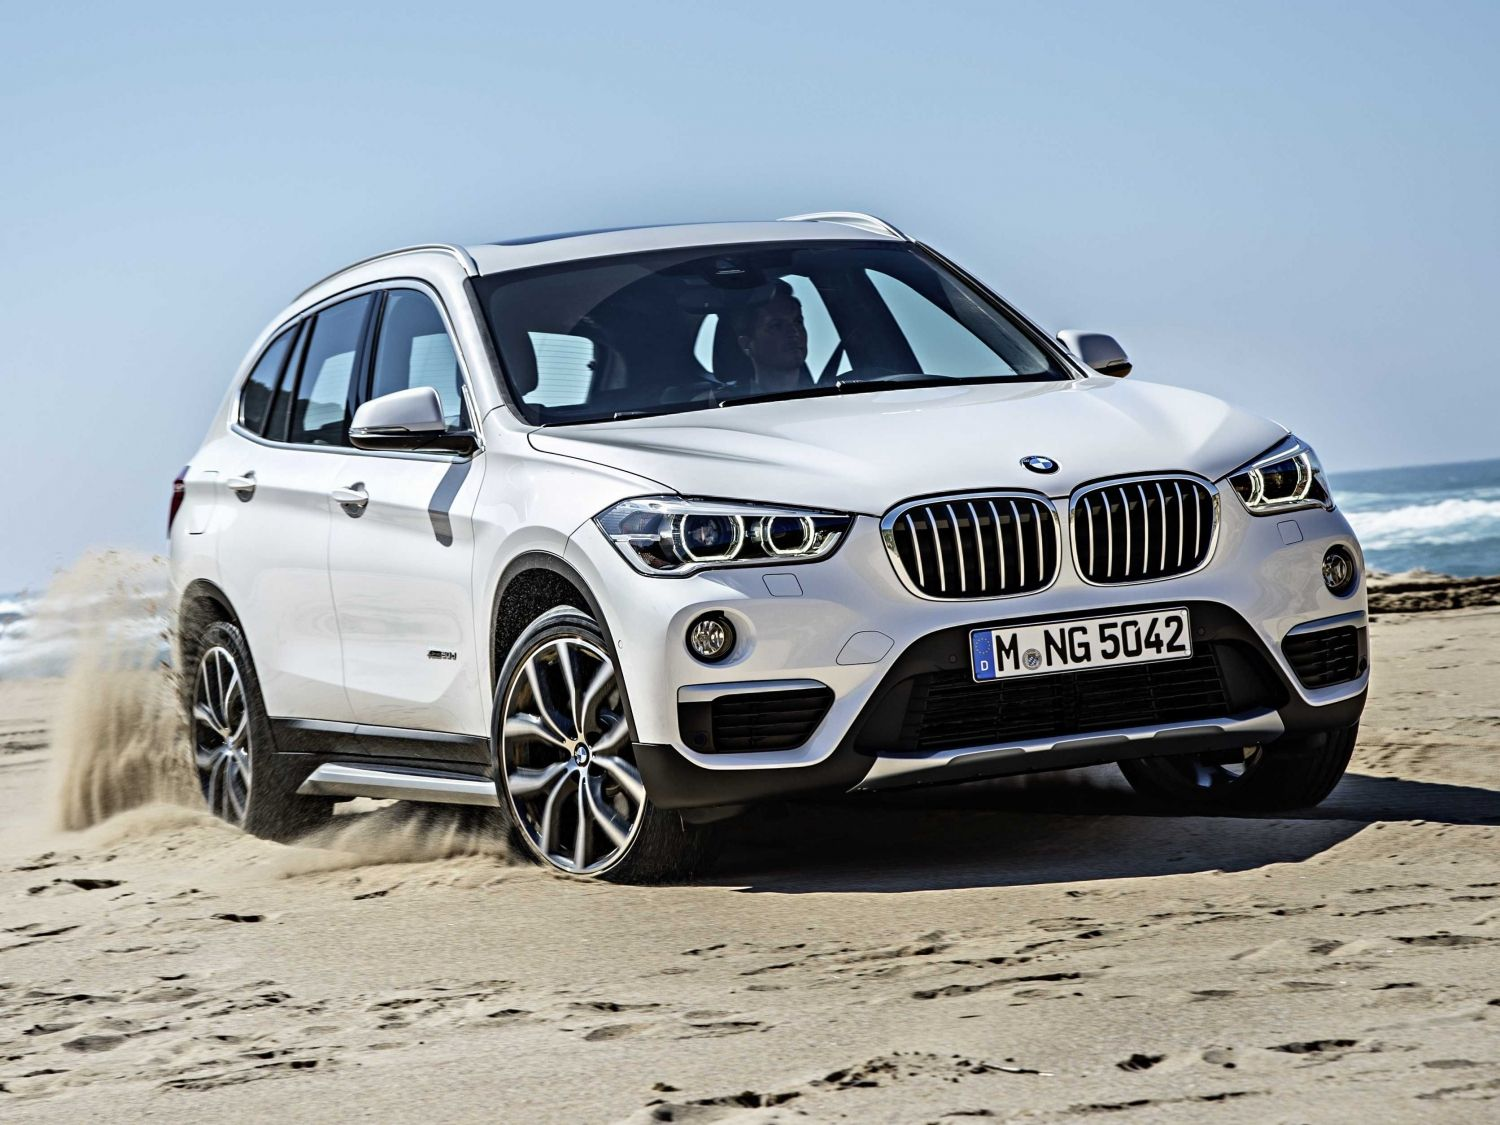 Small Bmw Suv   Small Suv Comparison Check More At Http://besthostingg.